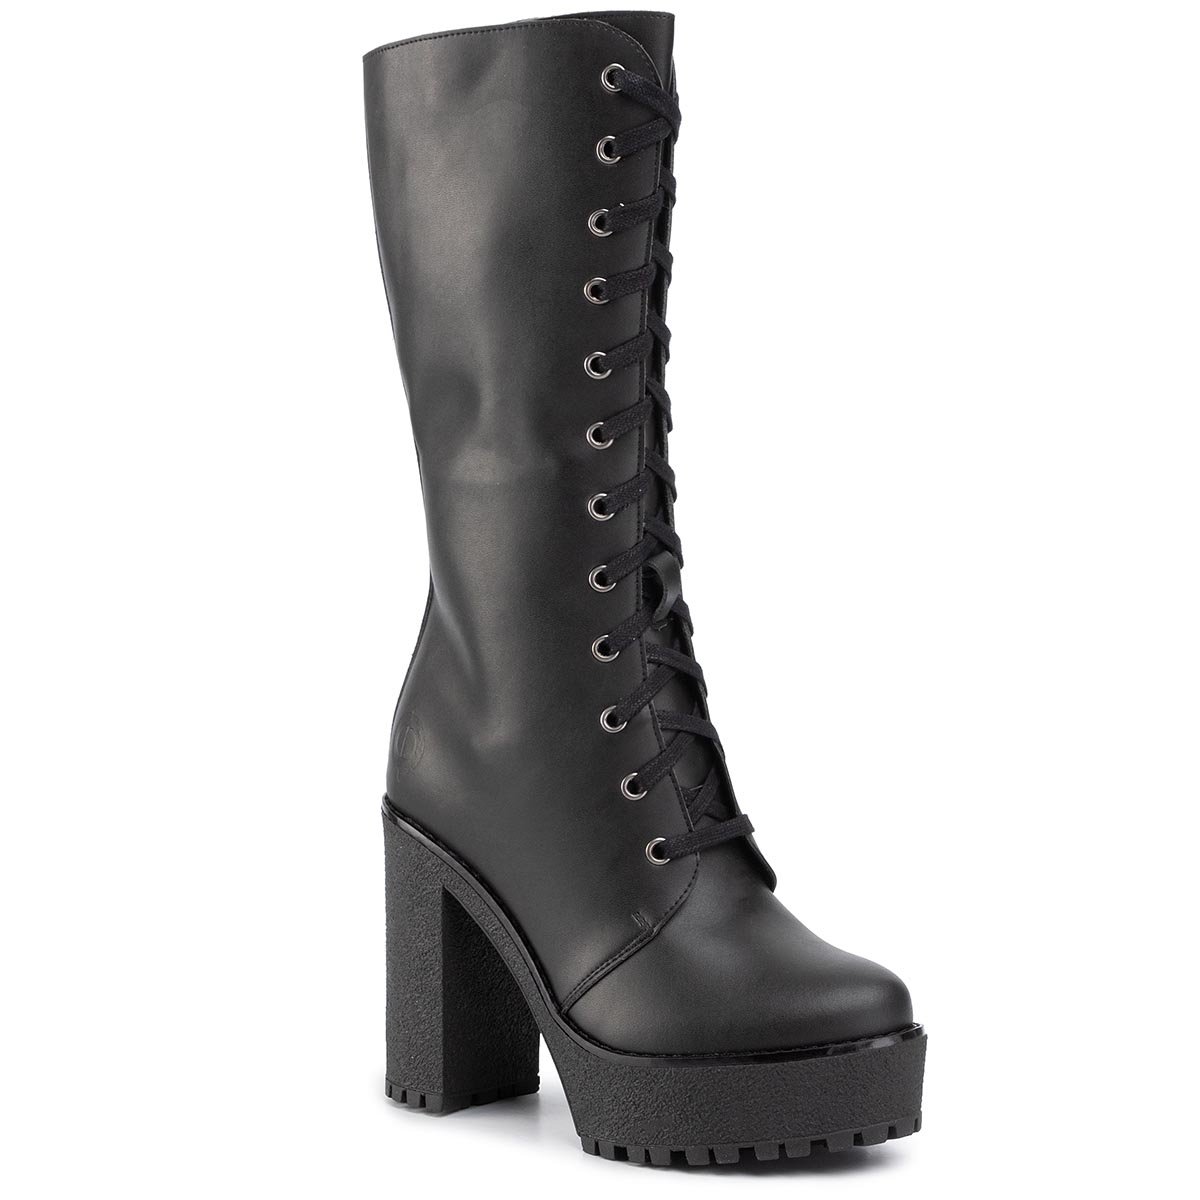 Image of Stiefel ALTERCORE - Alexa Vegan Black